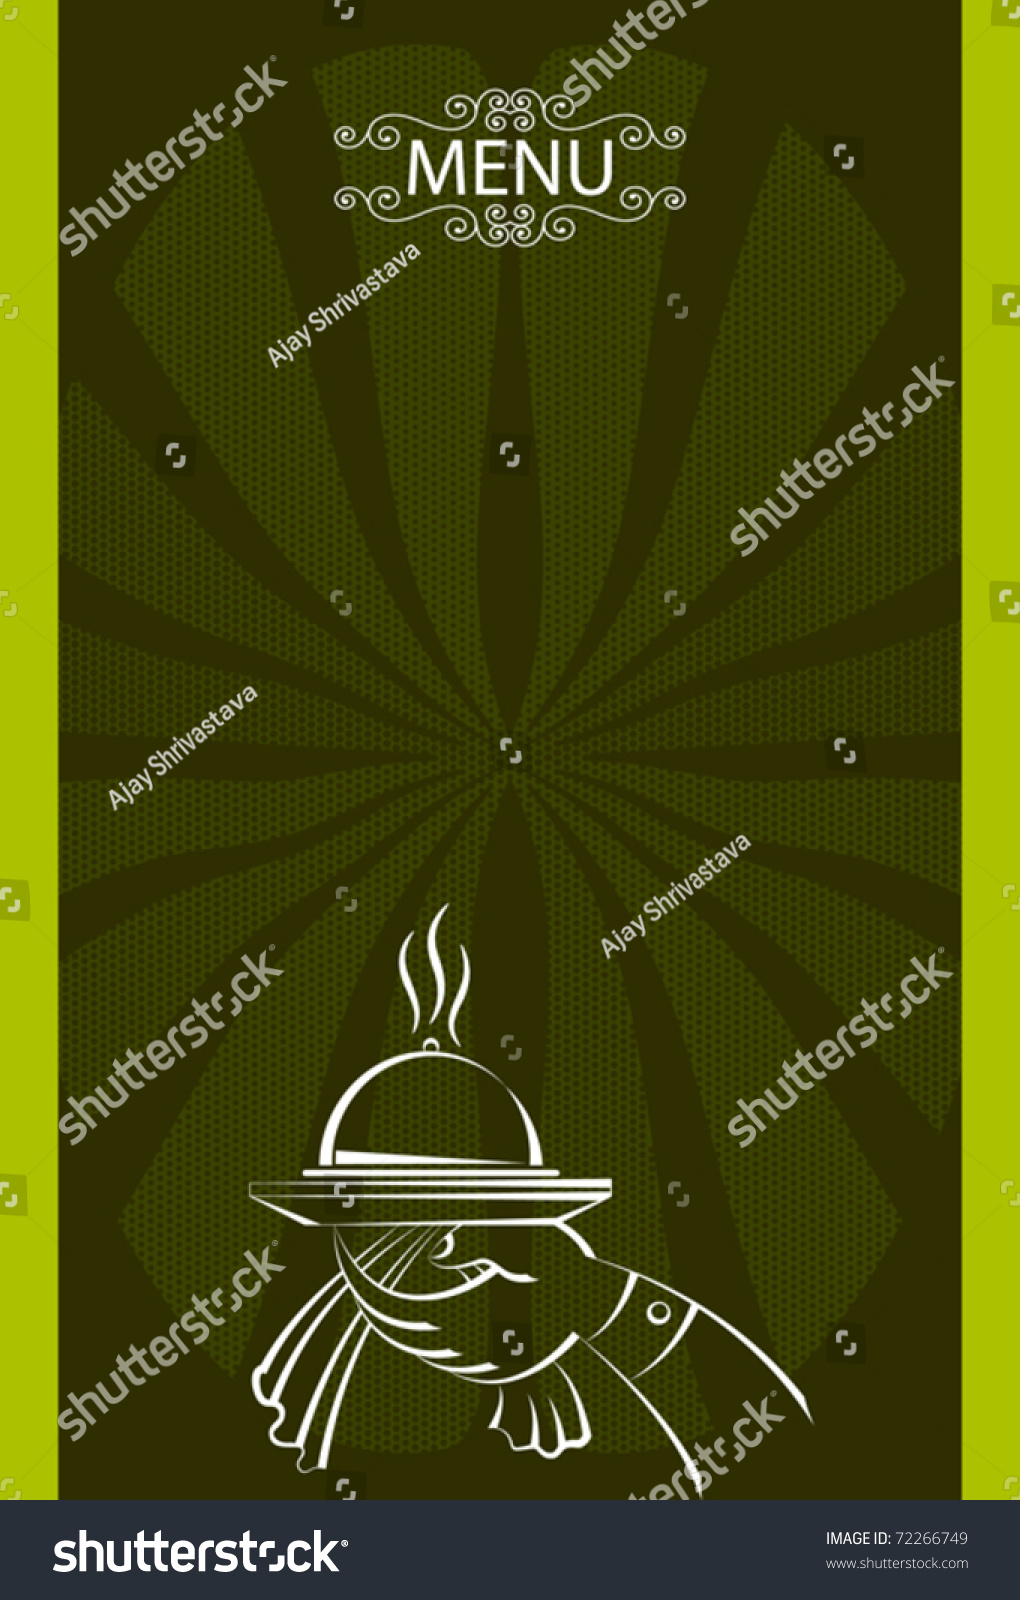 Menu card template stock vector illustration 72266749 for Frequent diner card template